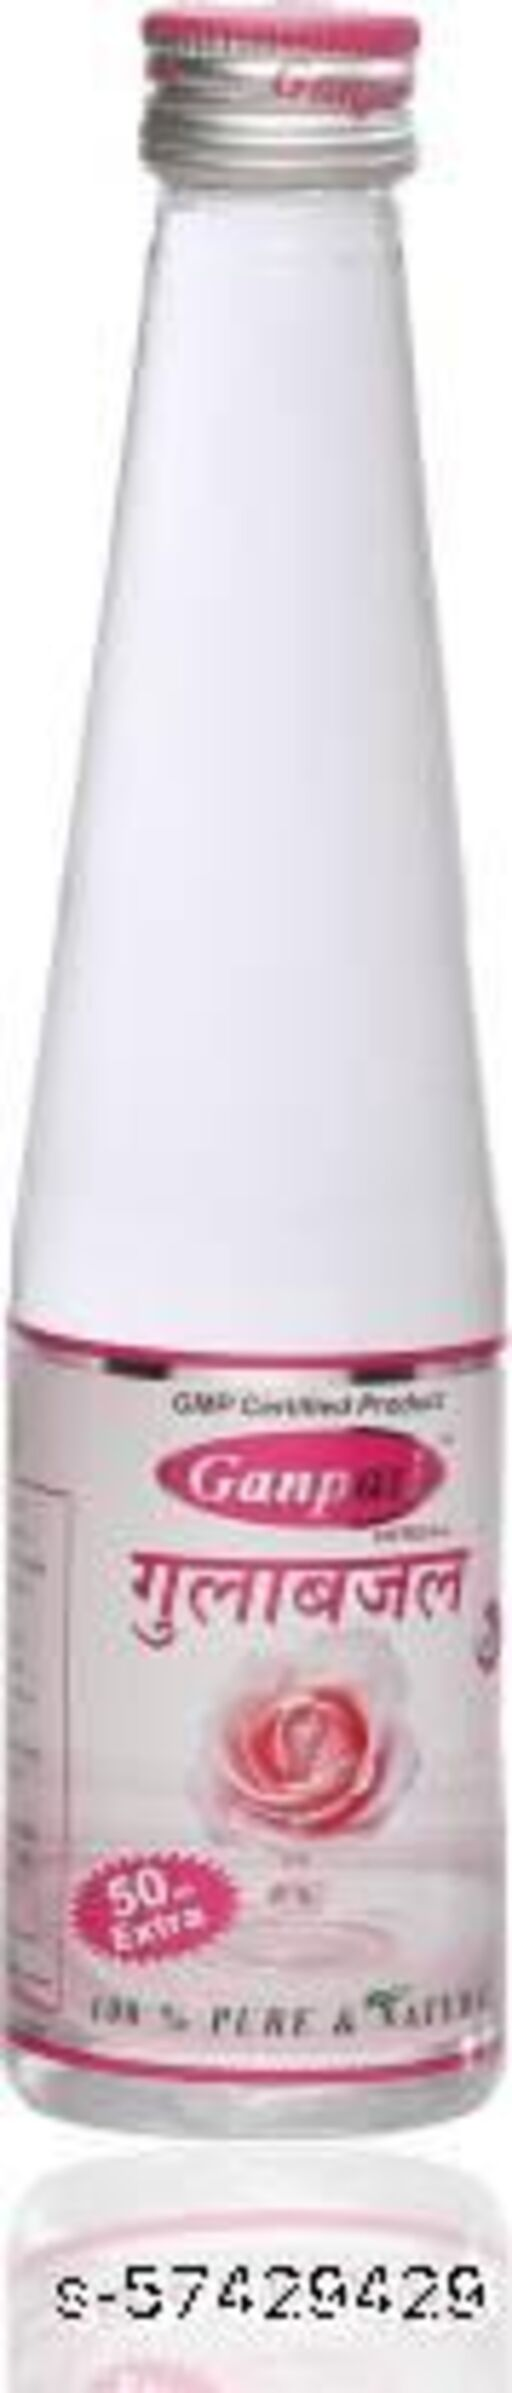 Ganpati Herbal Rose Water/Gulab Jal For Men And Women 250+50ML Pack of 300 Ml For Soft And Smooth Skin